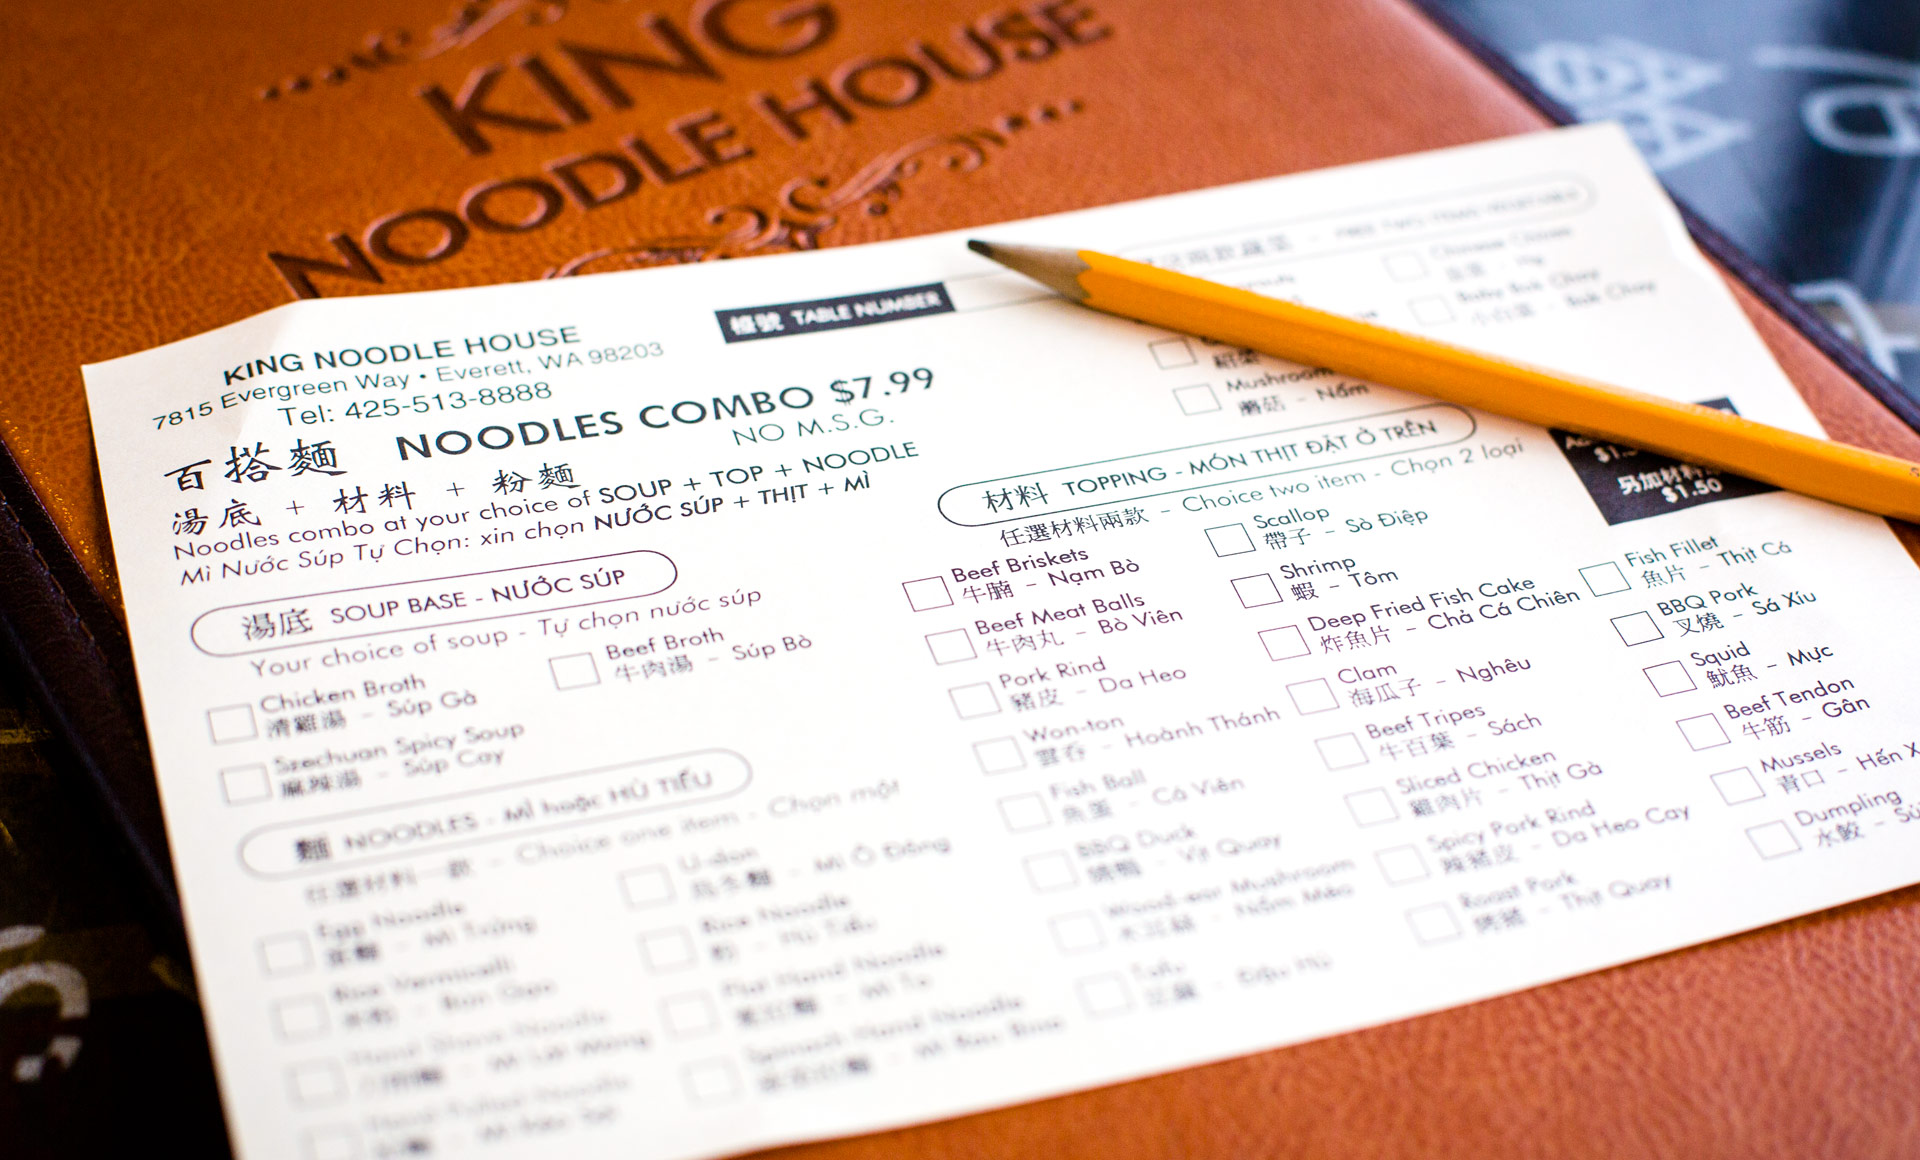 King Noodle House Soup Bowl Order Form